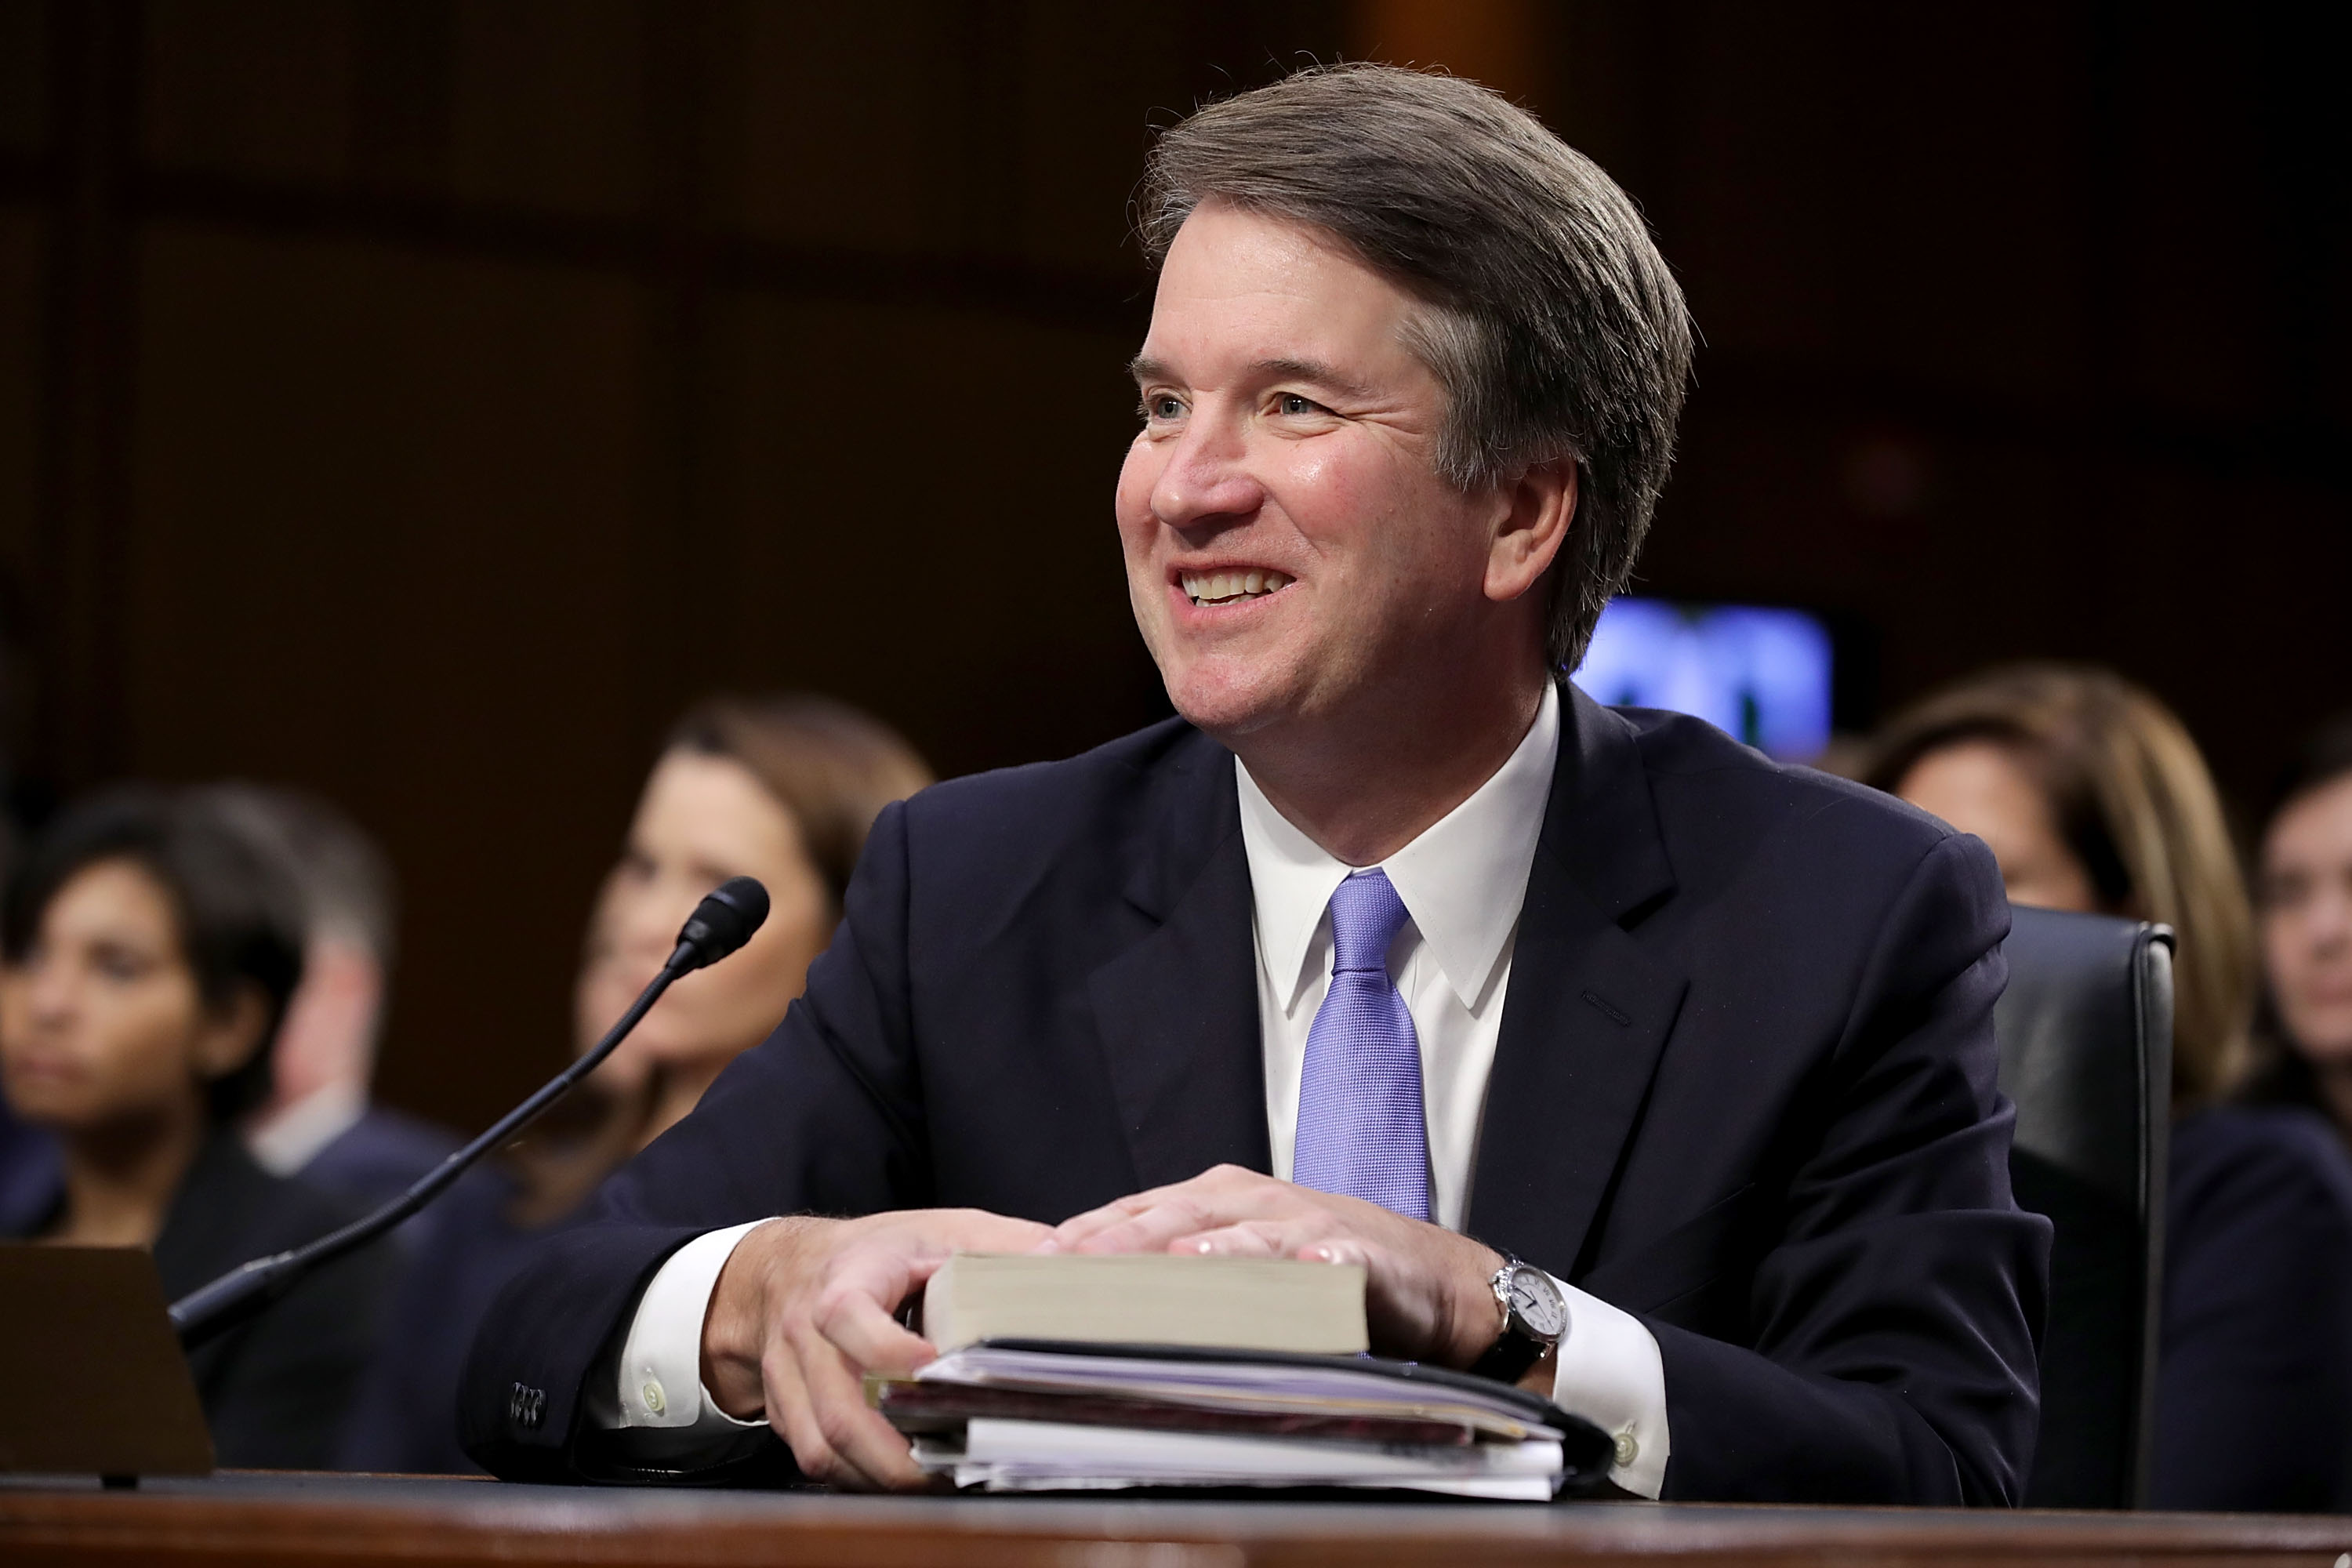 Supreme Court nominee Judge Brett Kavanaugh testifies before the Senate Judiciary Committee on the third day of his Supreme Court confirmation hearing on Capitol Hill September 6, 2018 in Washington, DC